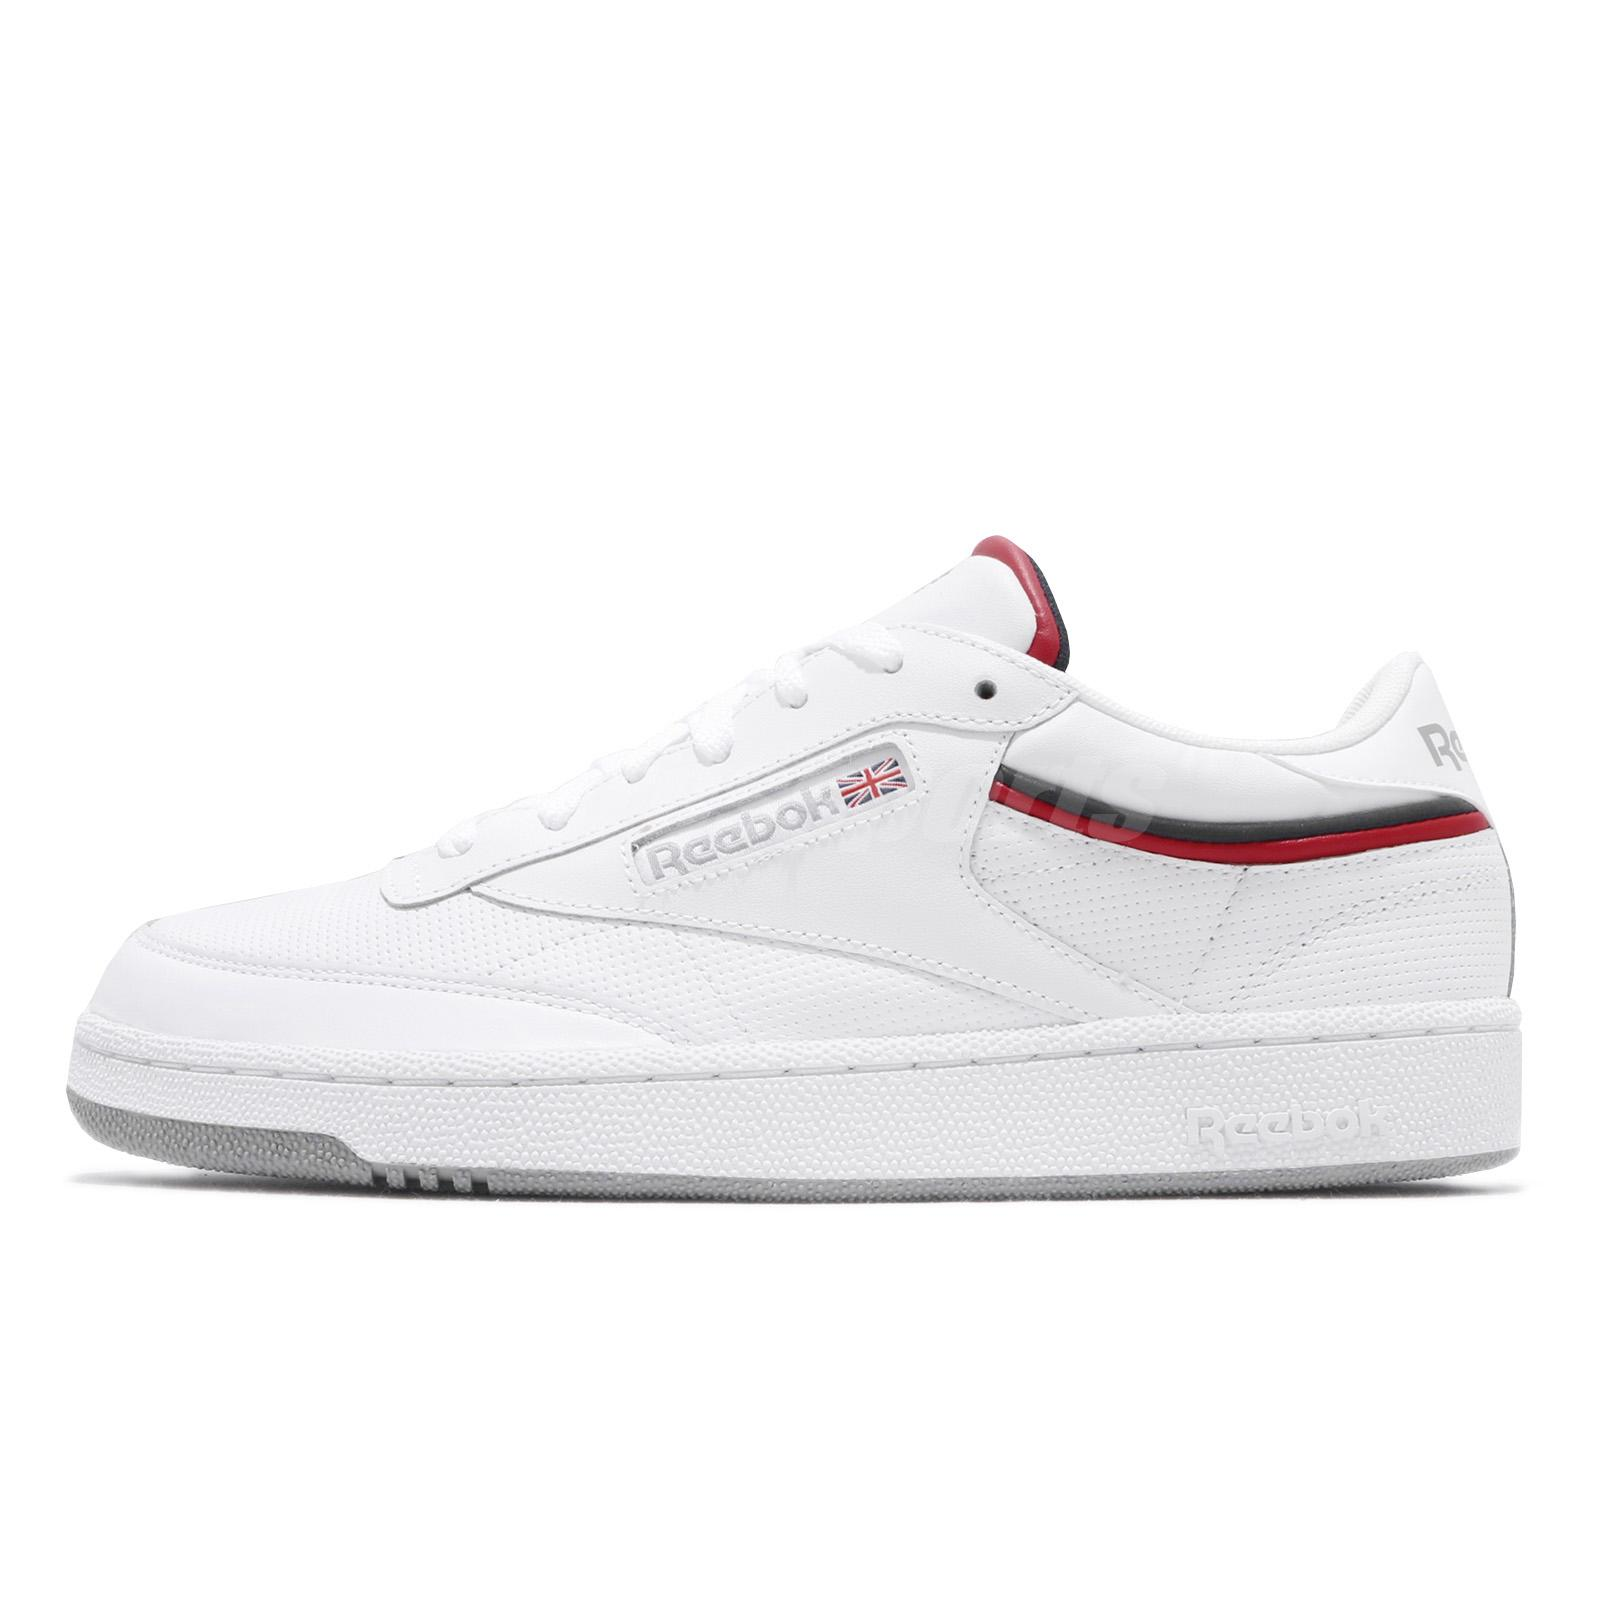 932df4194d45 Reebok Club C 85 MU White Navy Red Men Classic Casual Shoes Sneakers CN3761